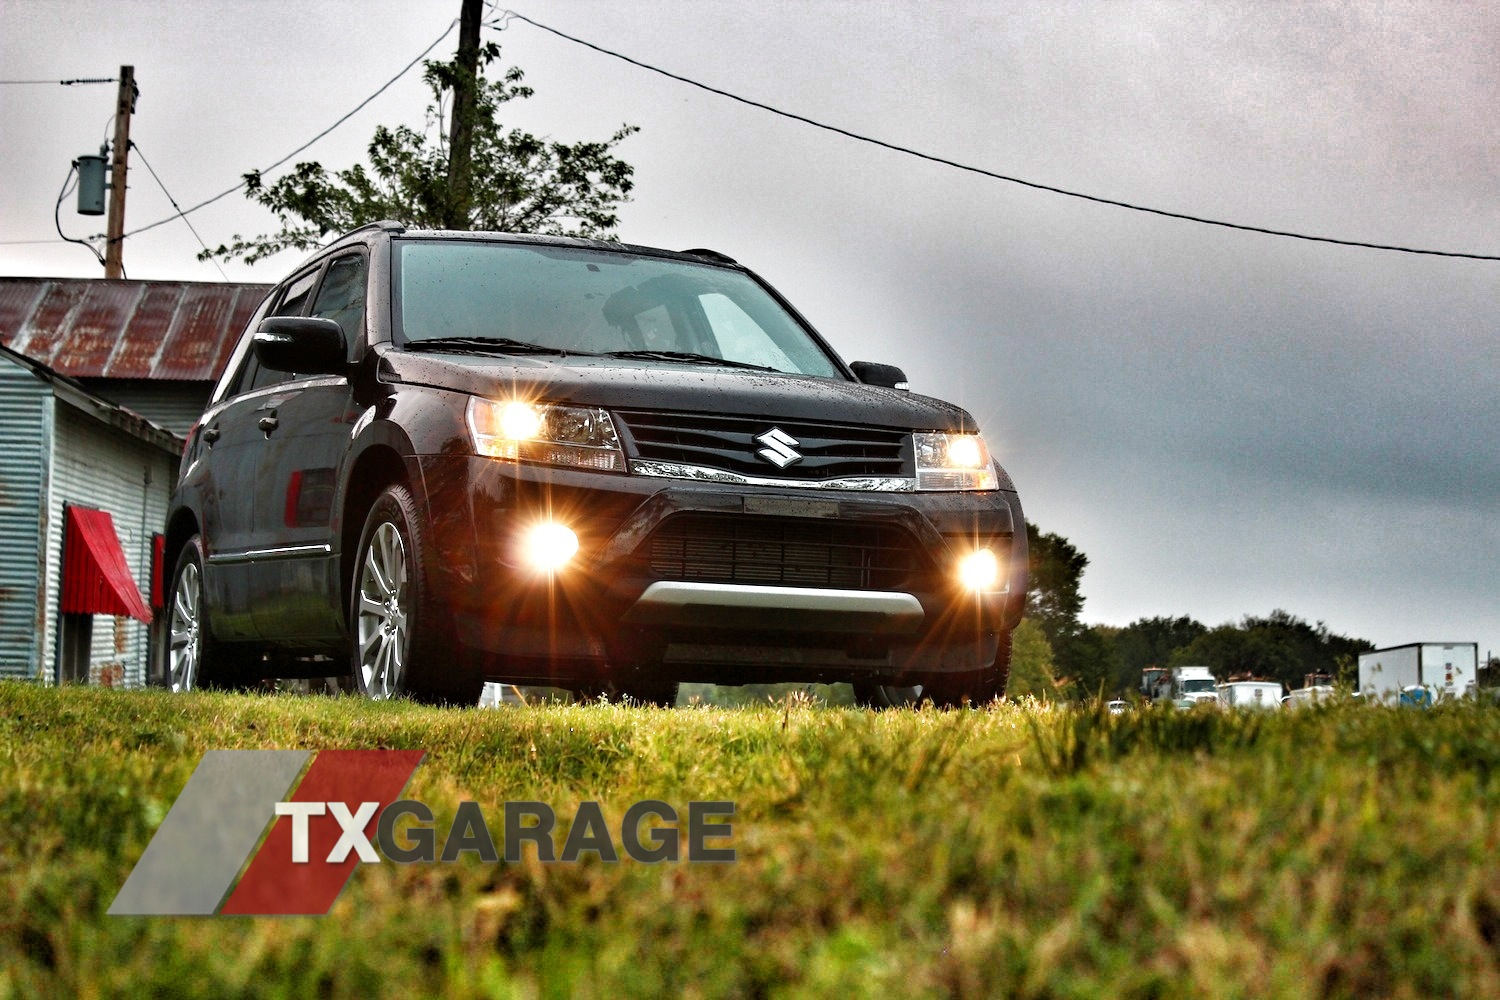 2013 Suzuki Grand Vitara Compact SUV By TxGarage